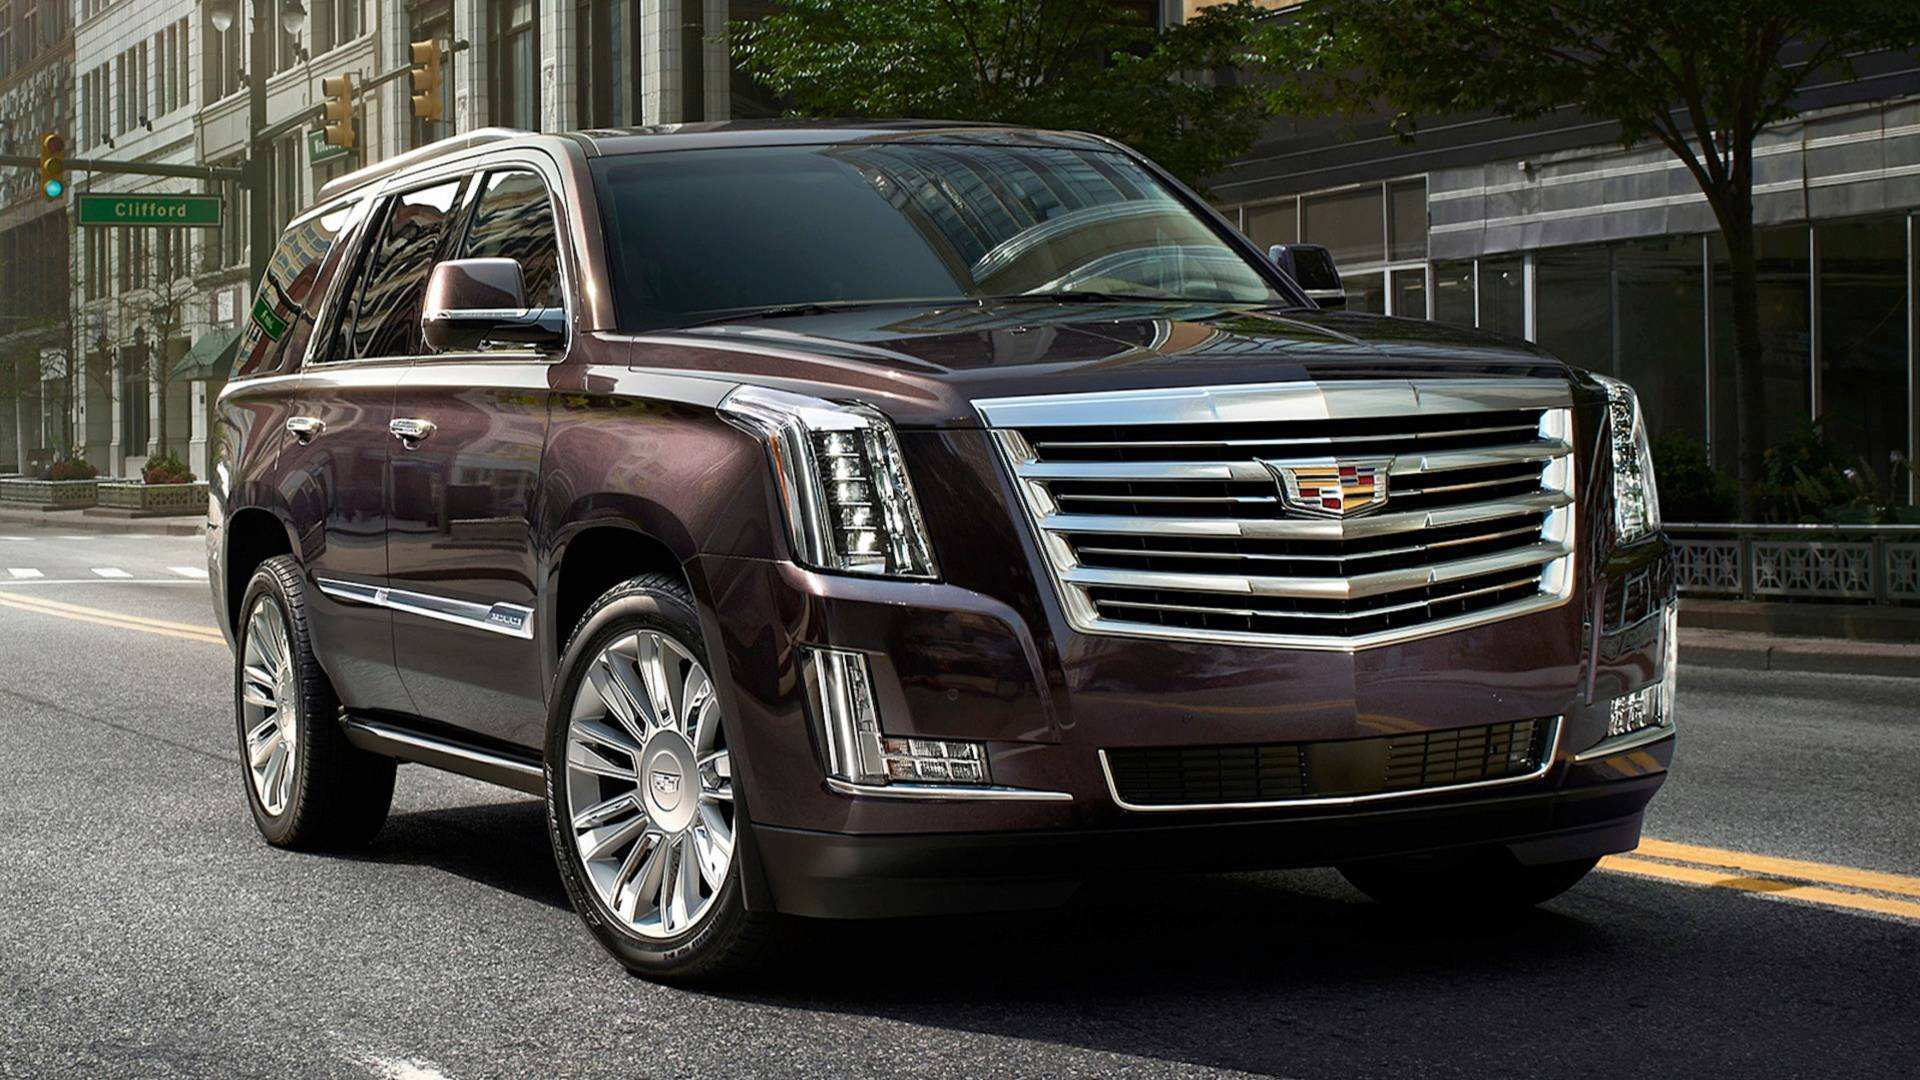 44 Concept of When Can I Order A 2020 Cadillac Escalade Wallpaper for When Can I Order A 2020 Cadillac Escalade